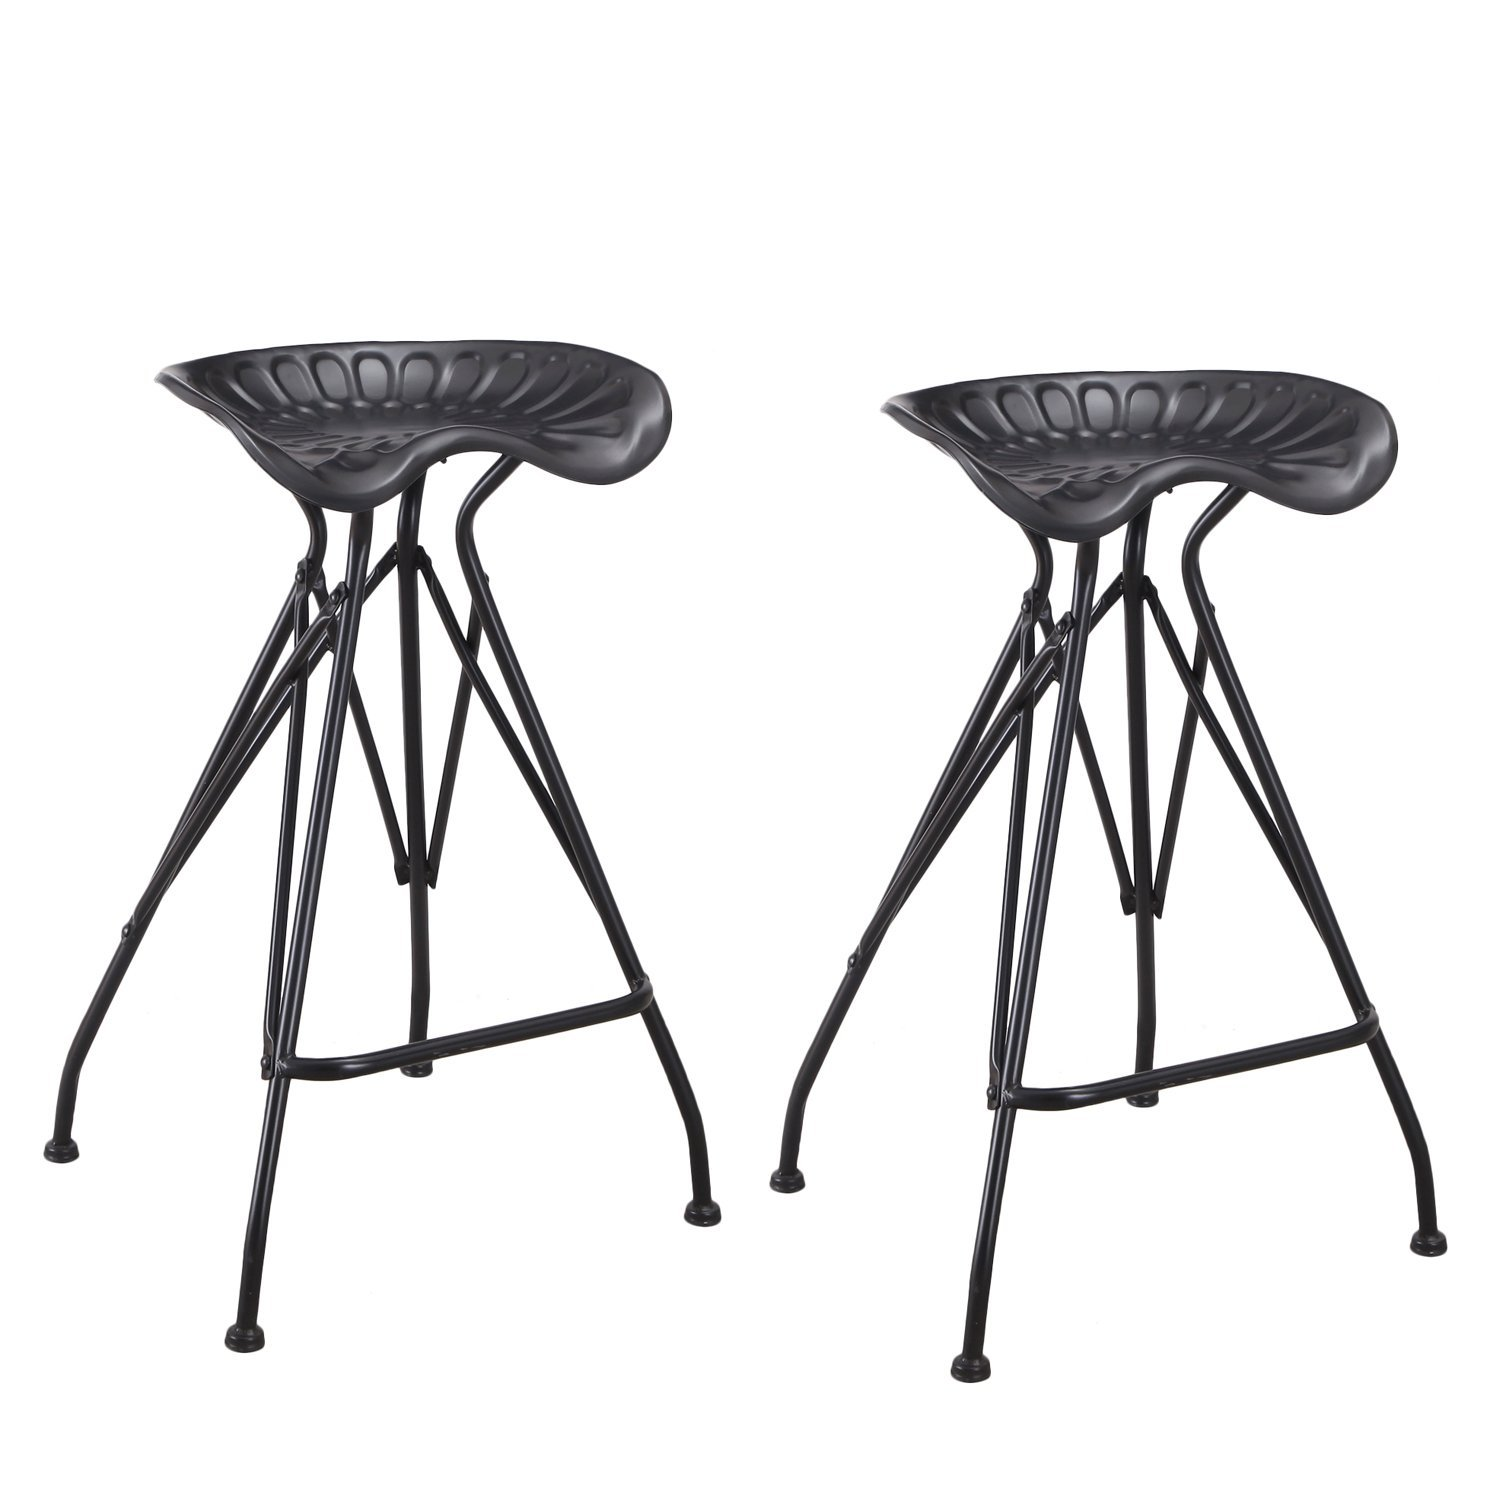 Brilliant Buy Charlie Industrial Metal Design Tractor Seat Bar Stool Ncnpc Chair Design For Home Ncnpcorg